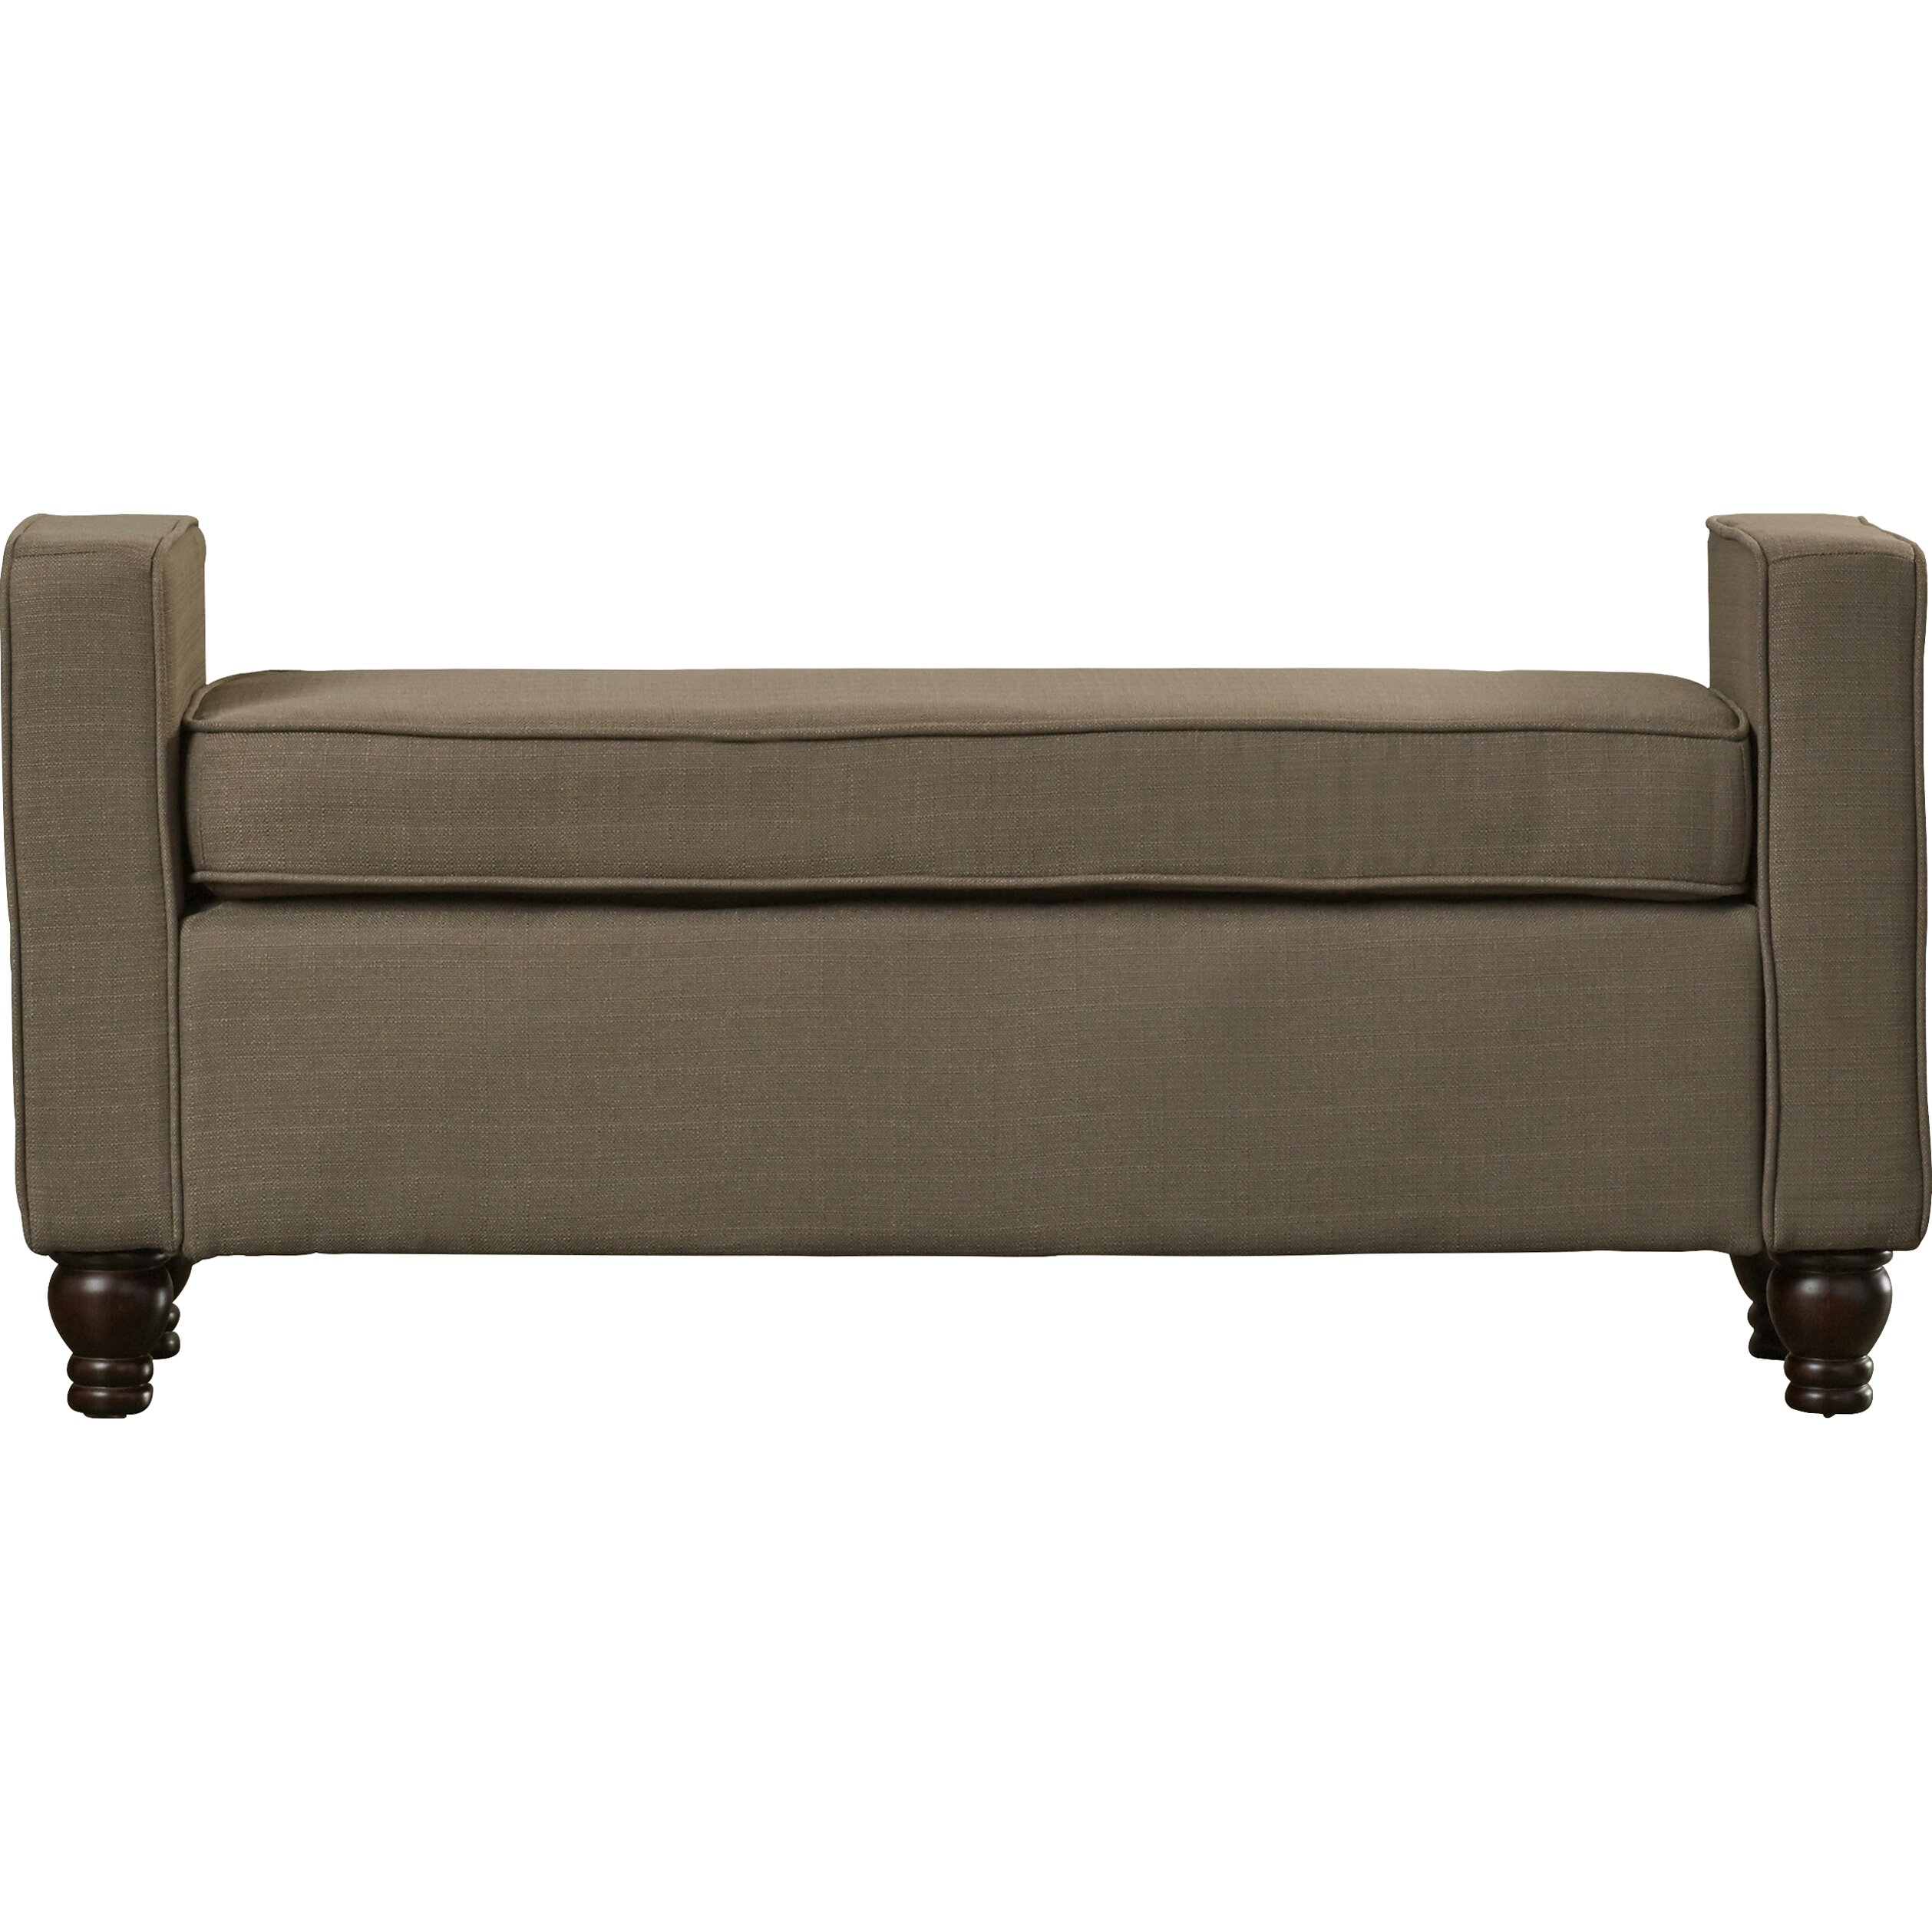 Darby Home Co Stoddard Upholstered Bedroom Bench Reviews Wayfair